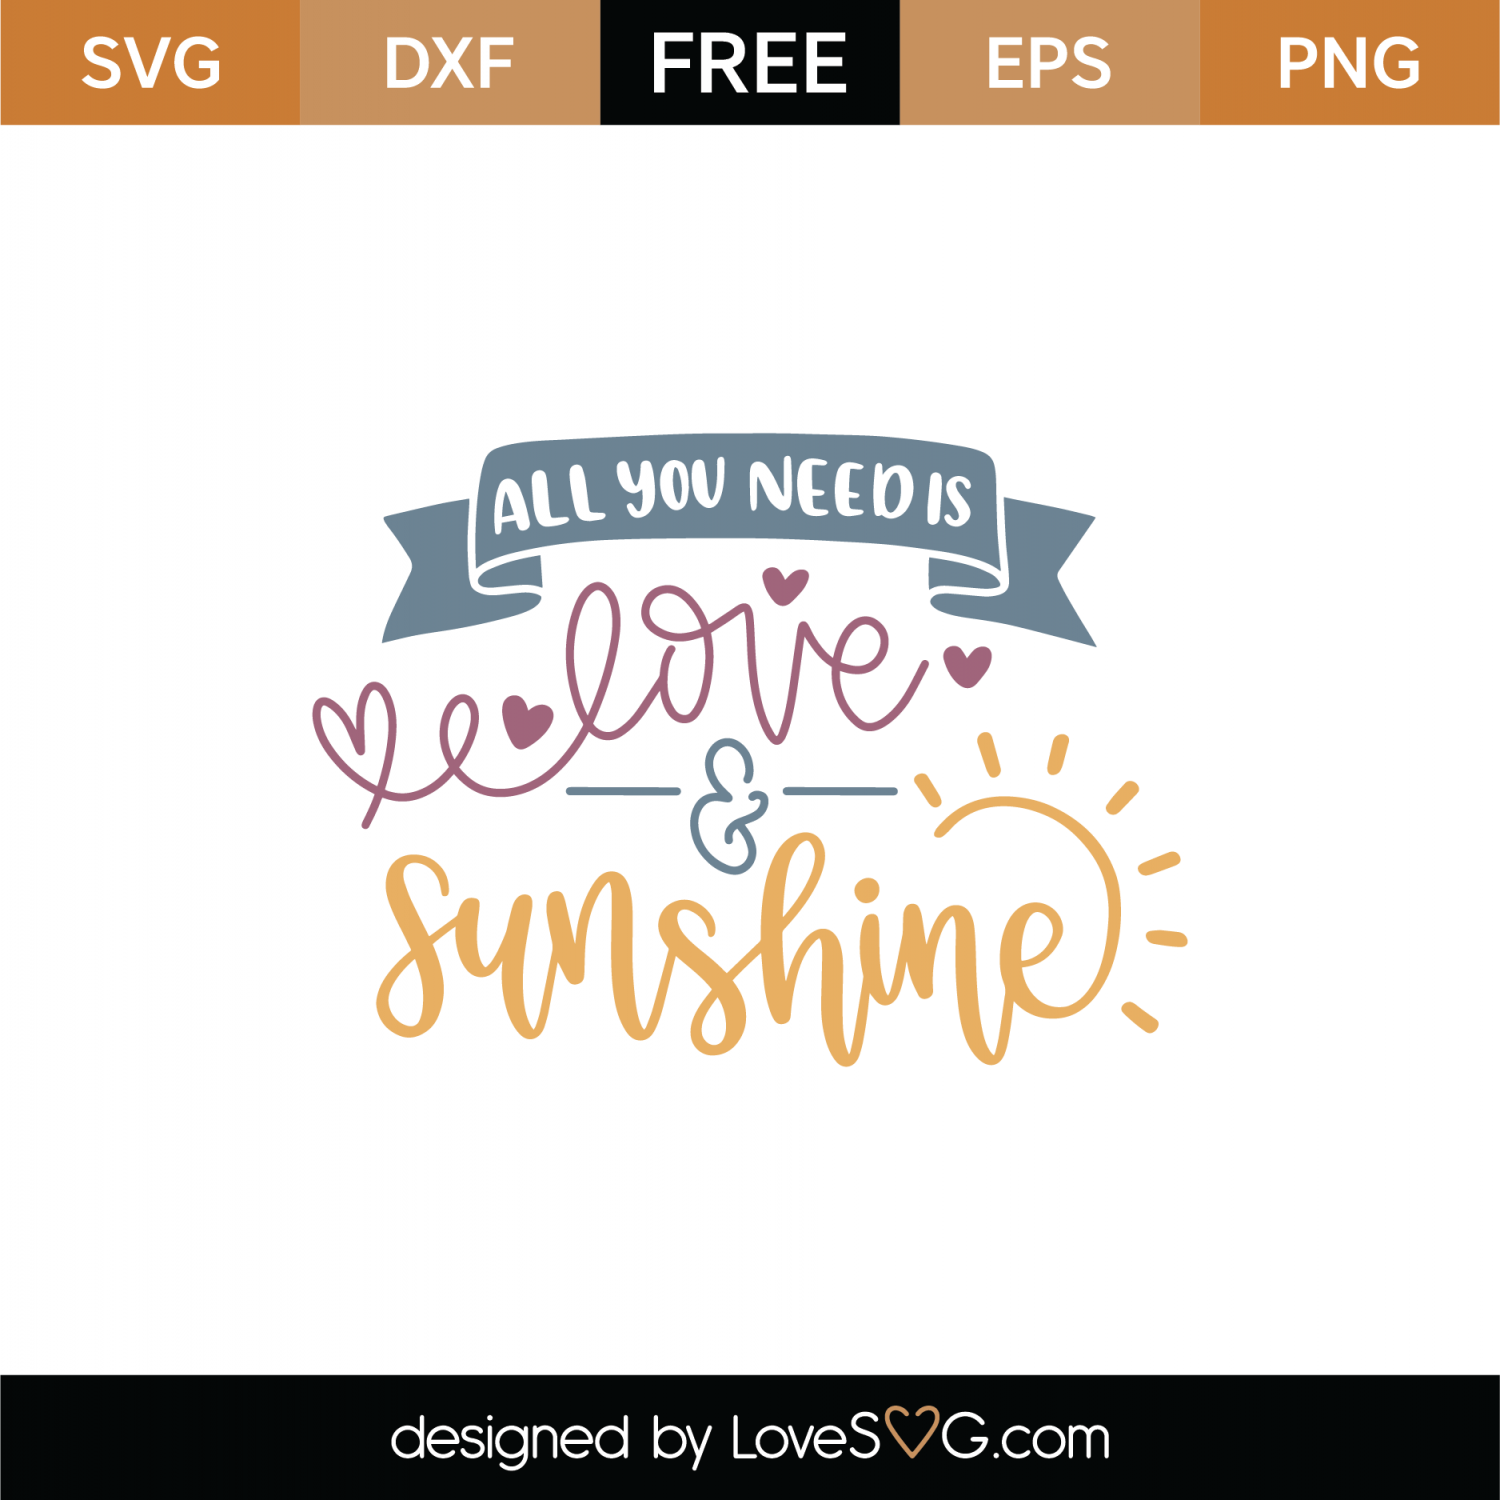 Download Free All You Need Is Love And Sunshine SVG Cut File ...